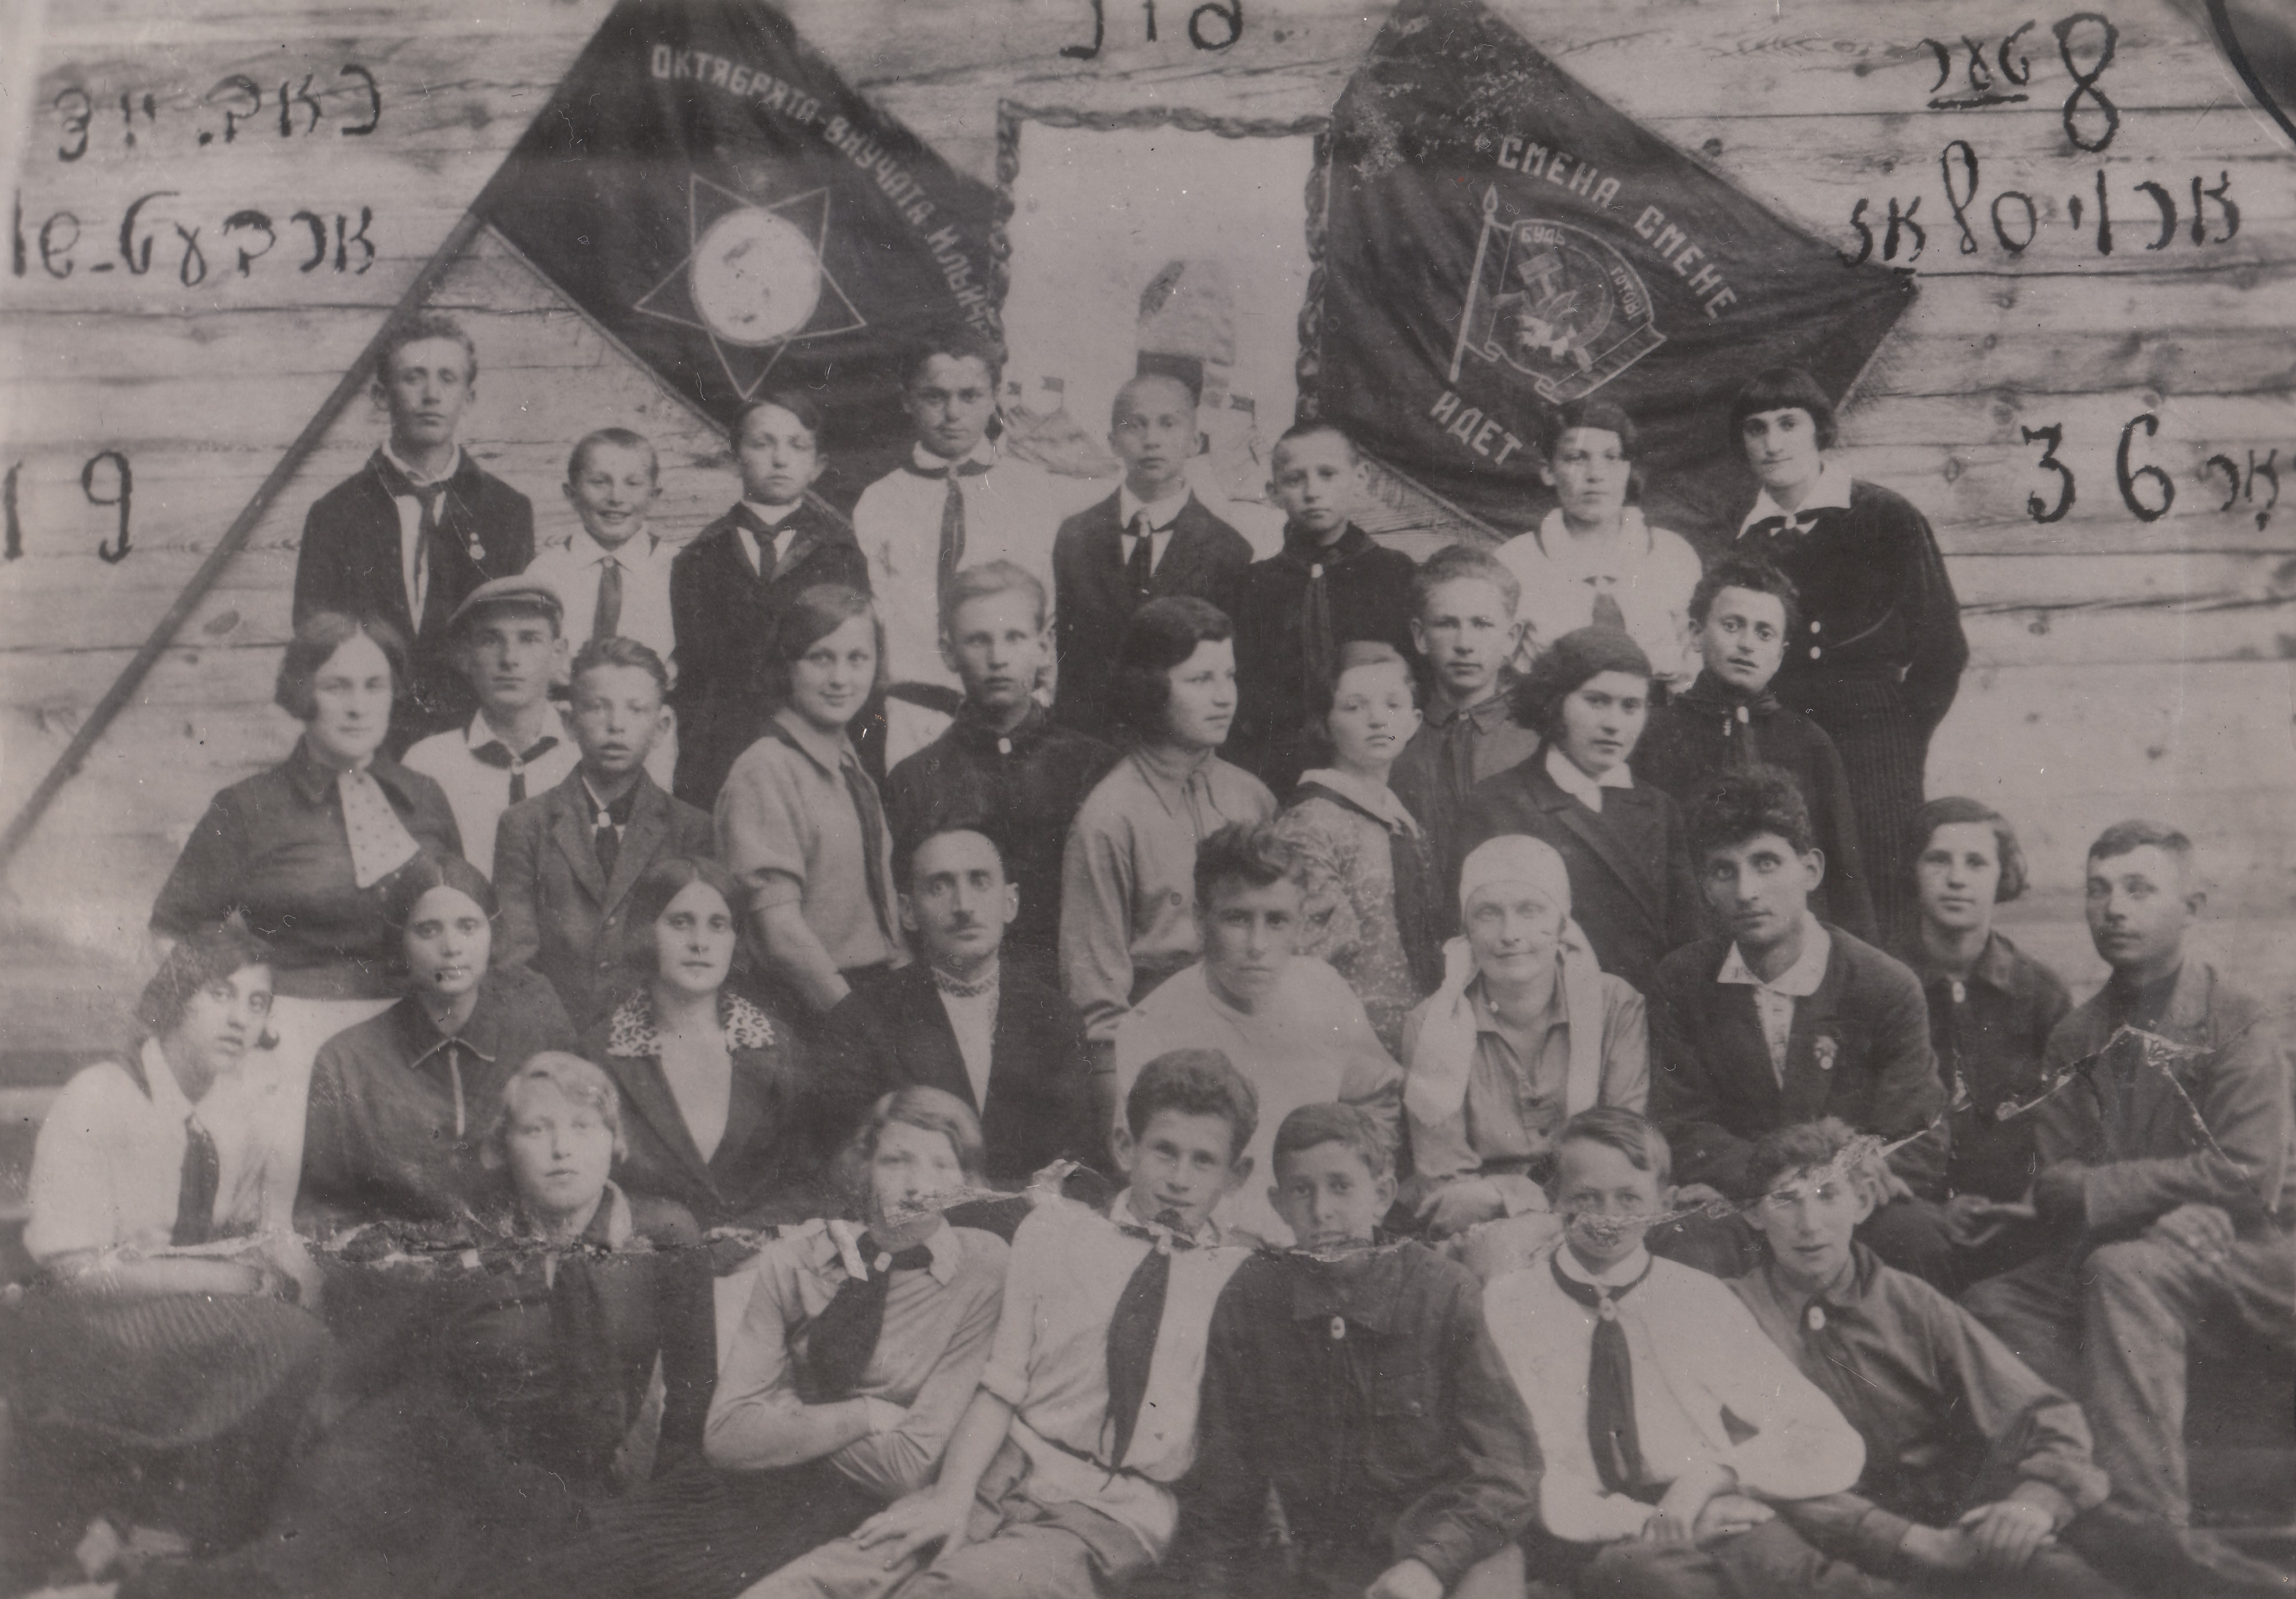 Khabno Jewish school, 8th grade in 1936